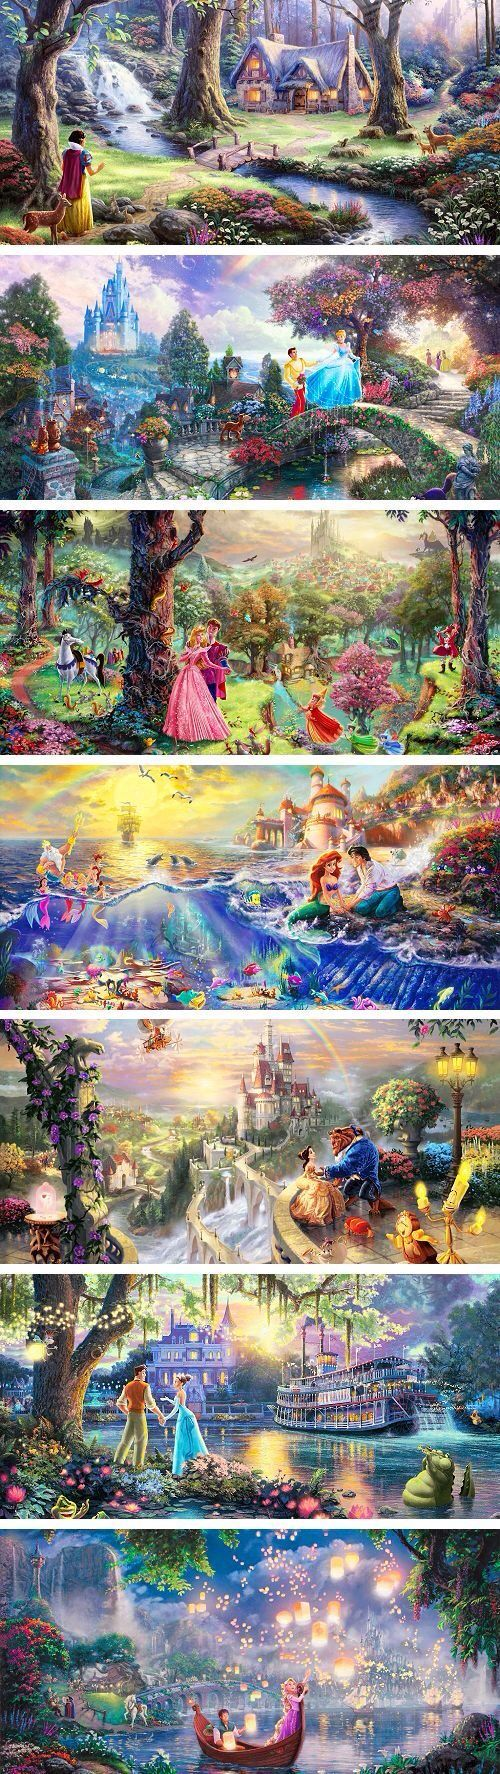 Thomas kinkade. Disney princesses